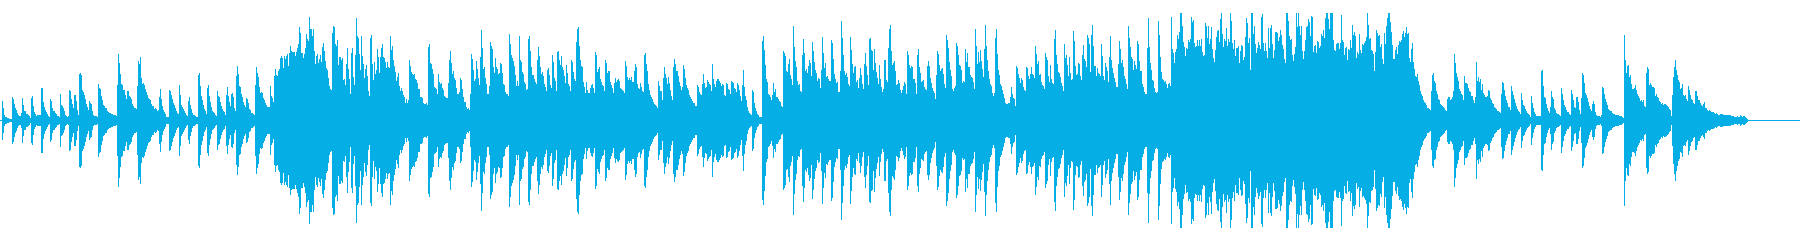 Piano solo Calm atmosphere's reproduced waveform